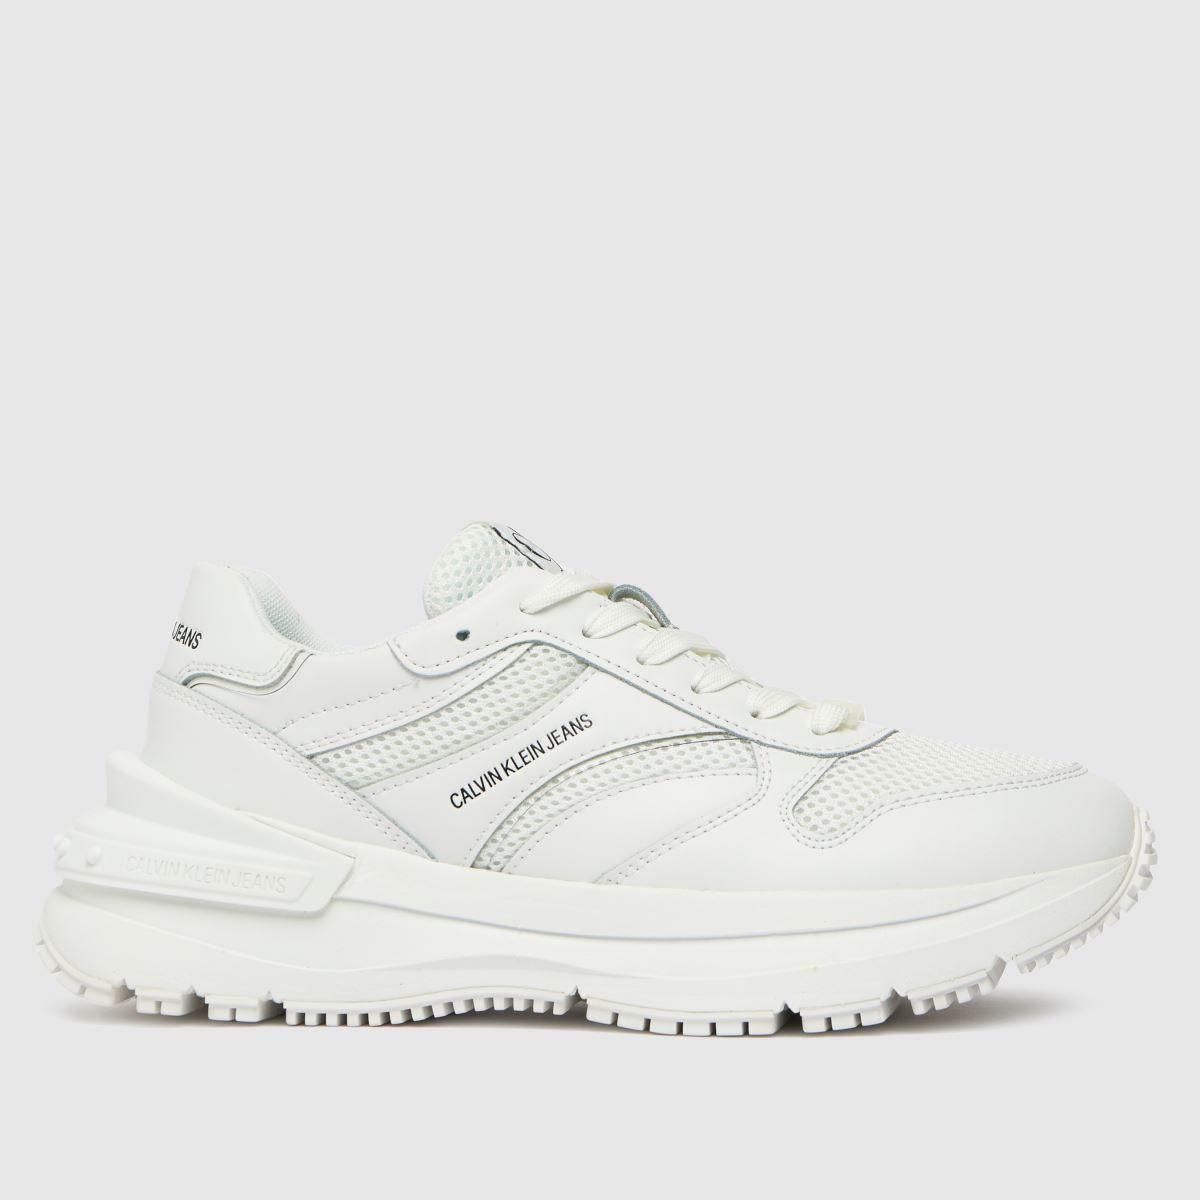 CALVIN KLEIN White Runner Lace Up Sneaker Trainers